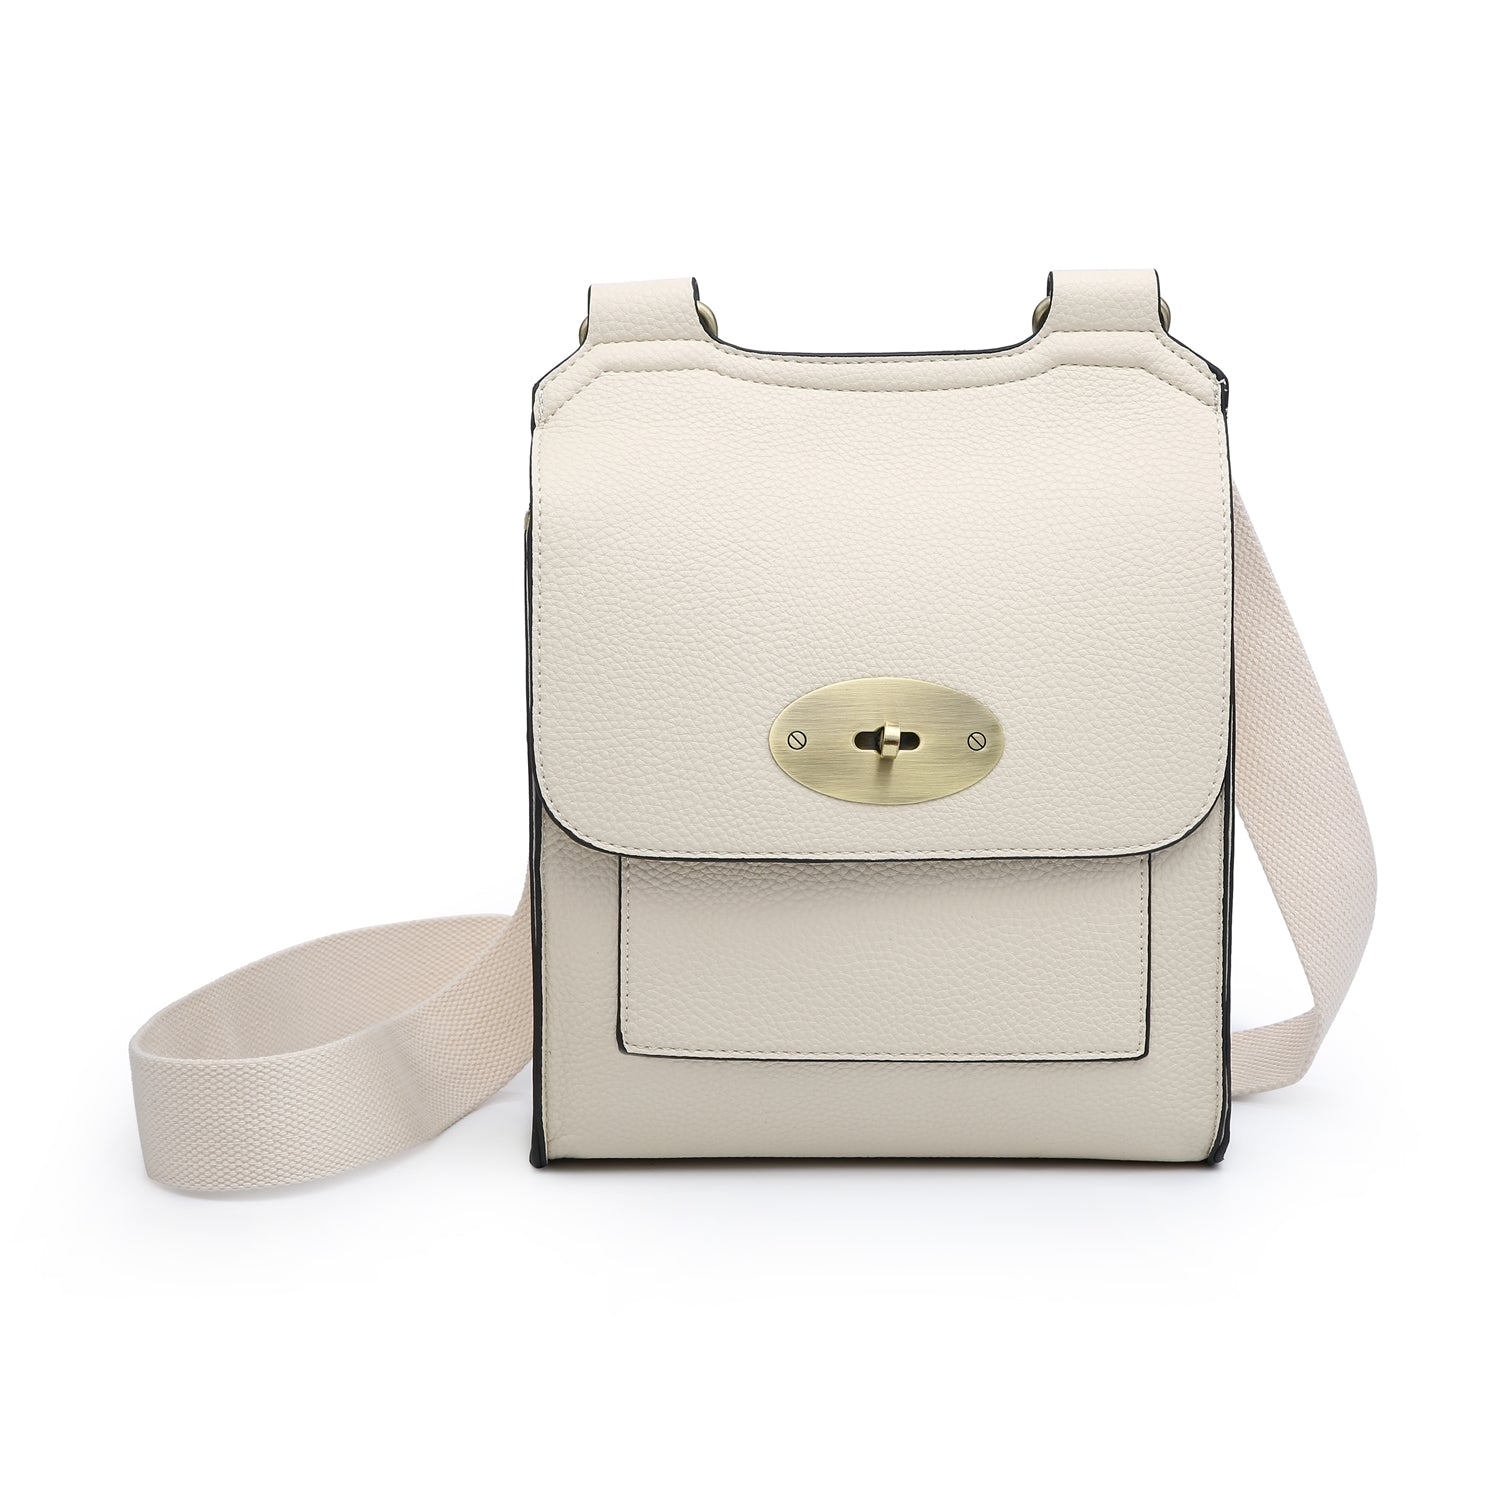 Large Cross Body Satchel Bag | Cream